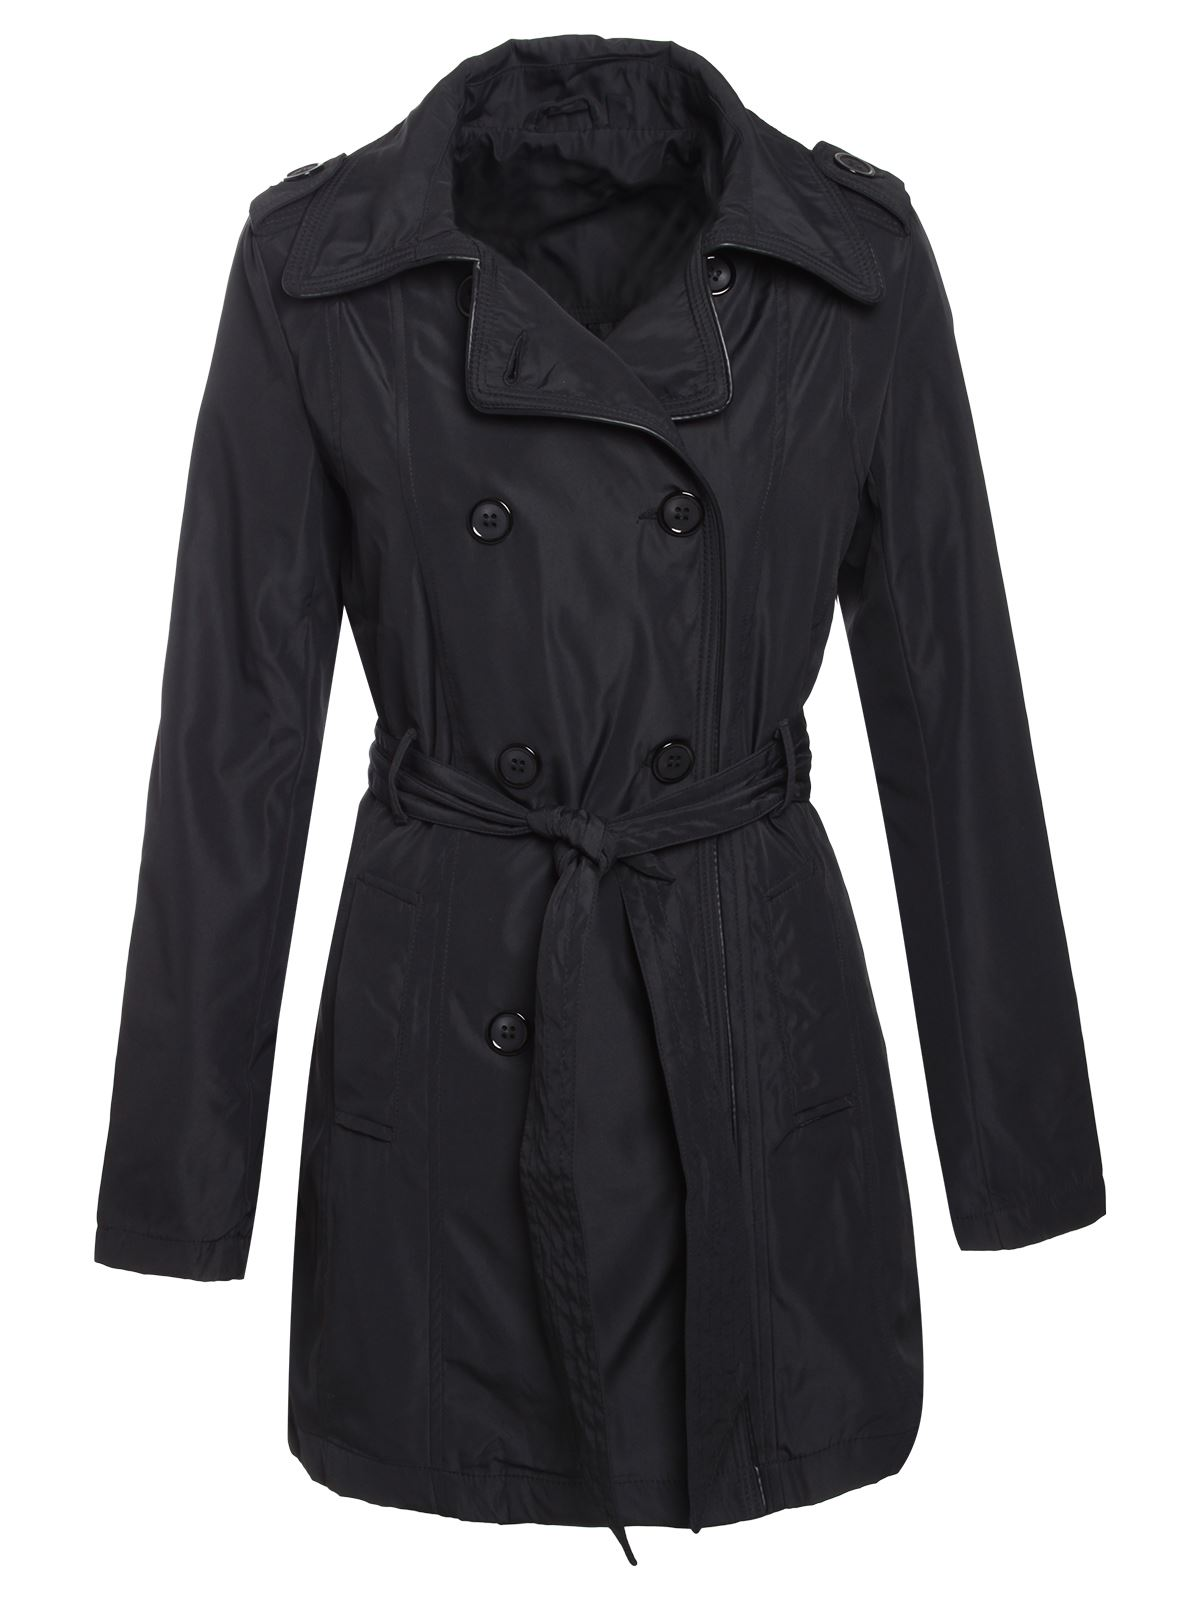 Brave-Soul-Womens-Ladies-Trench-Mac-Belted-Jacket-Double-Breasted-Coat